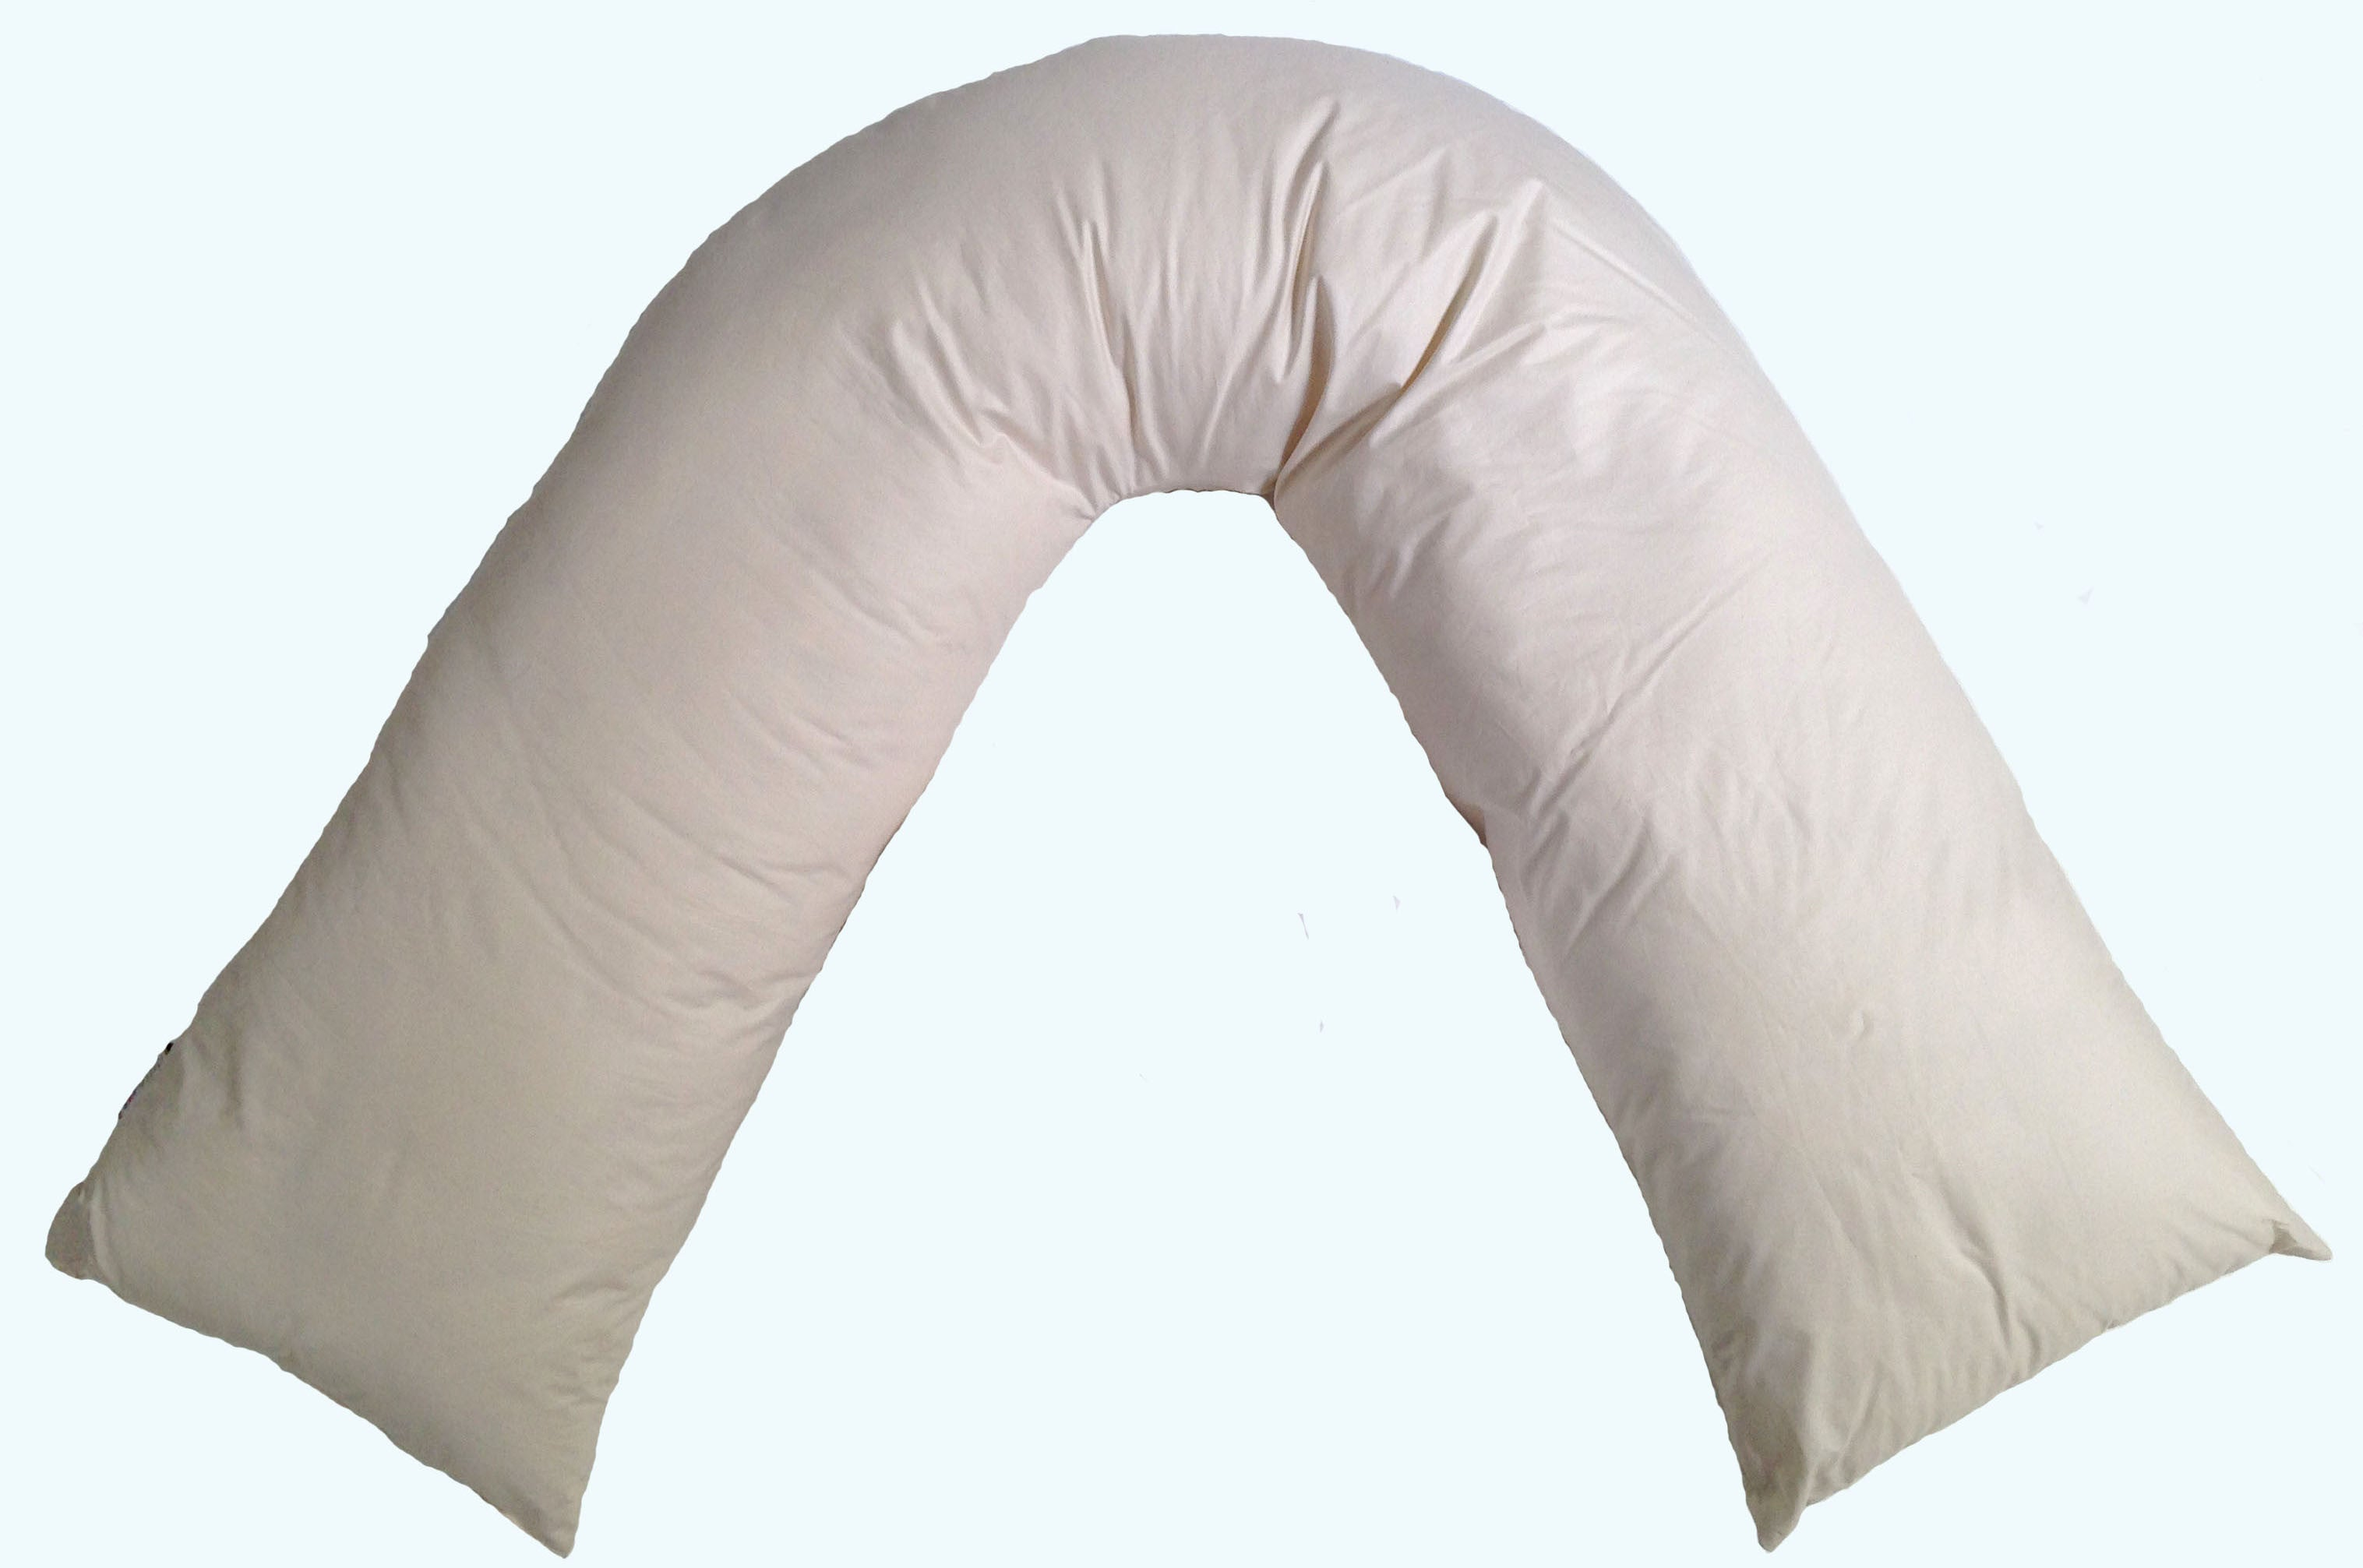 V Support Pillow